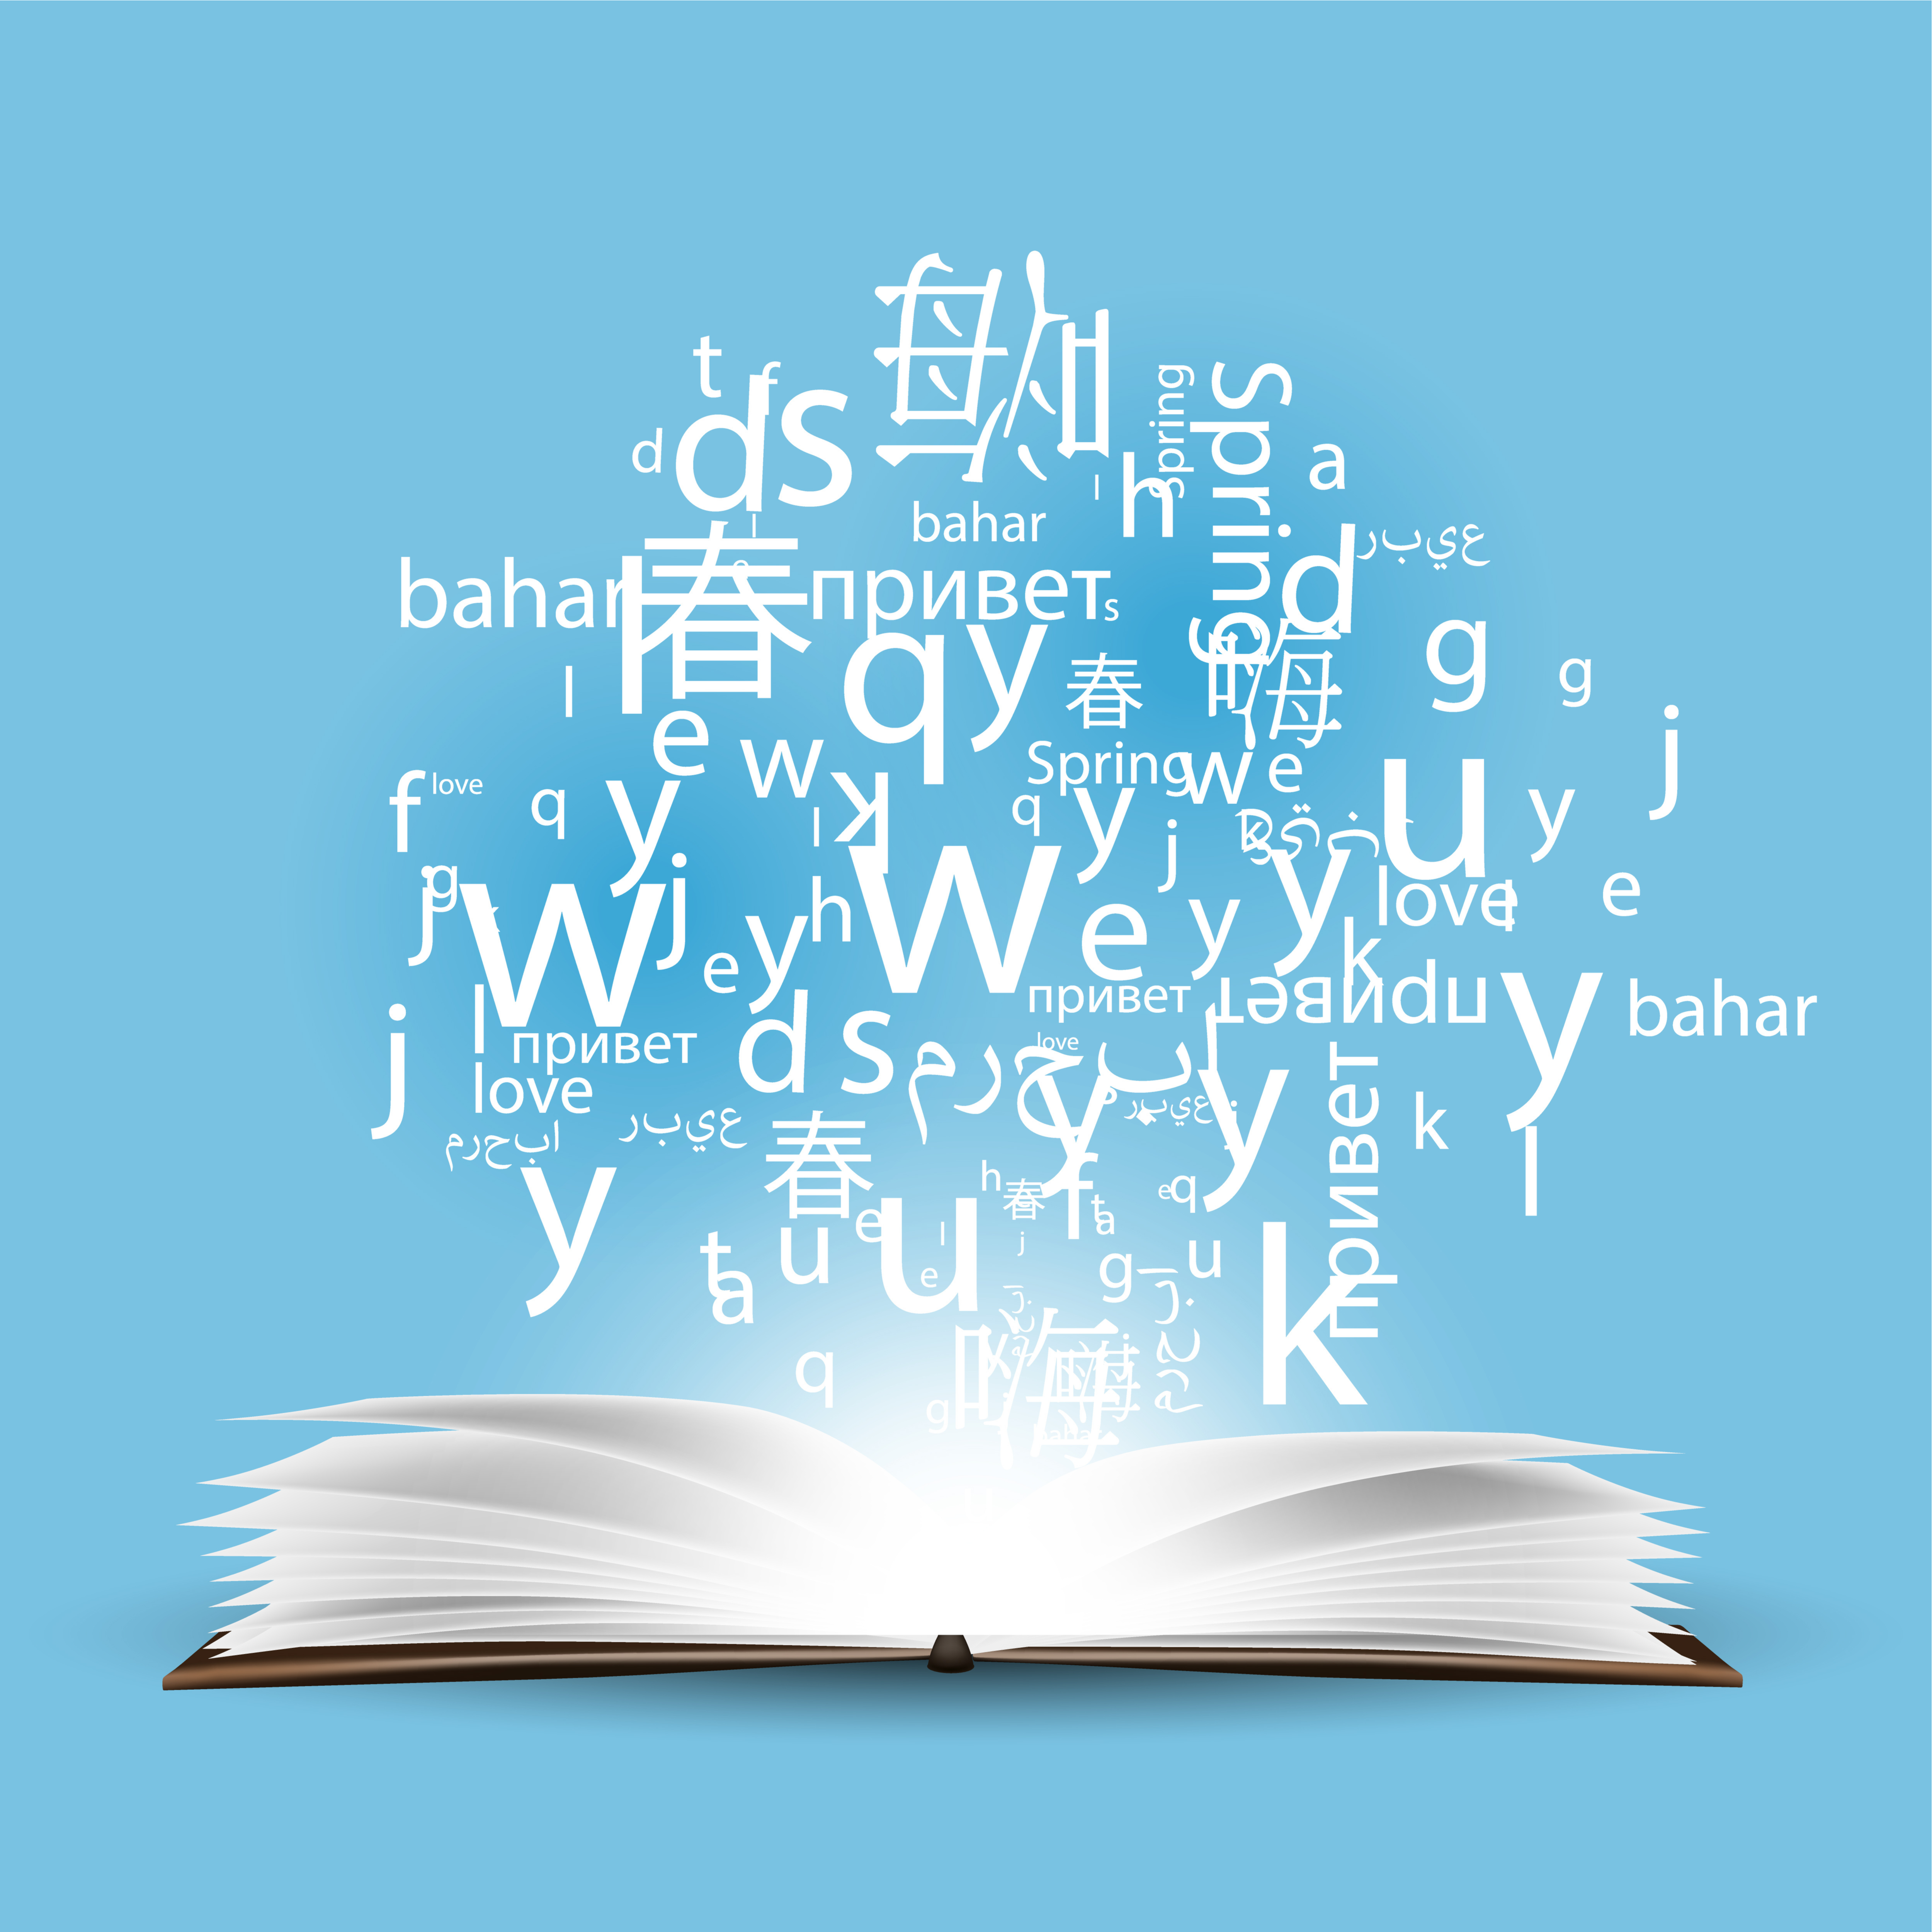 An Arabic dictionary will help you translate a few words. But communication in Arabic works differently. Click here for code-switching rules.